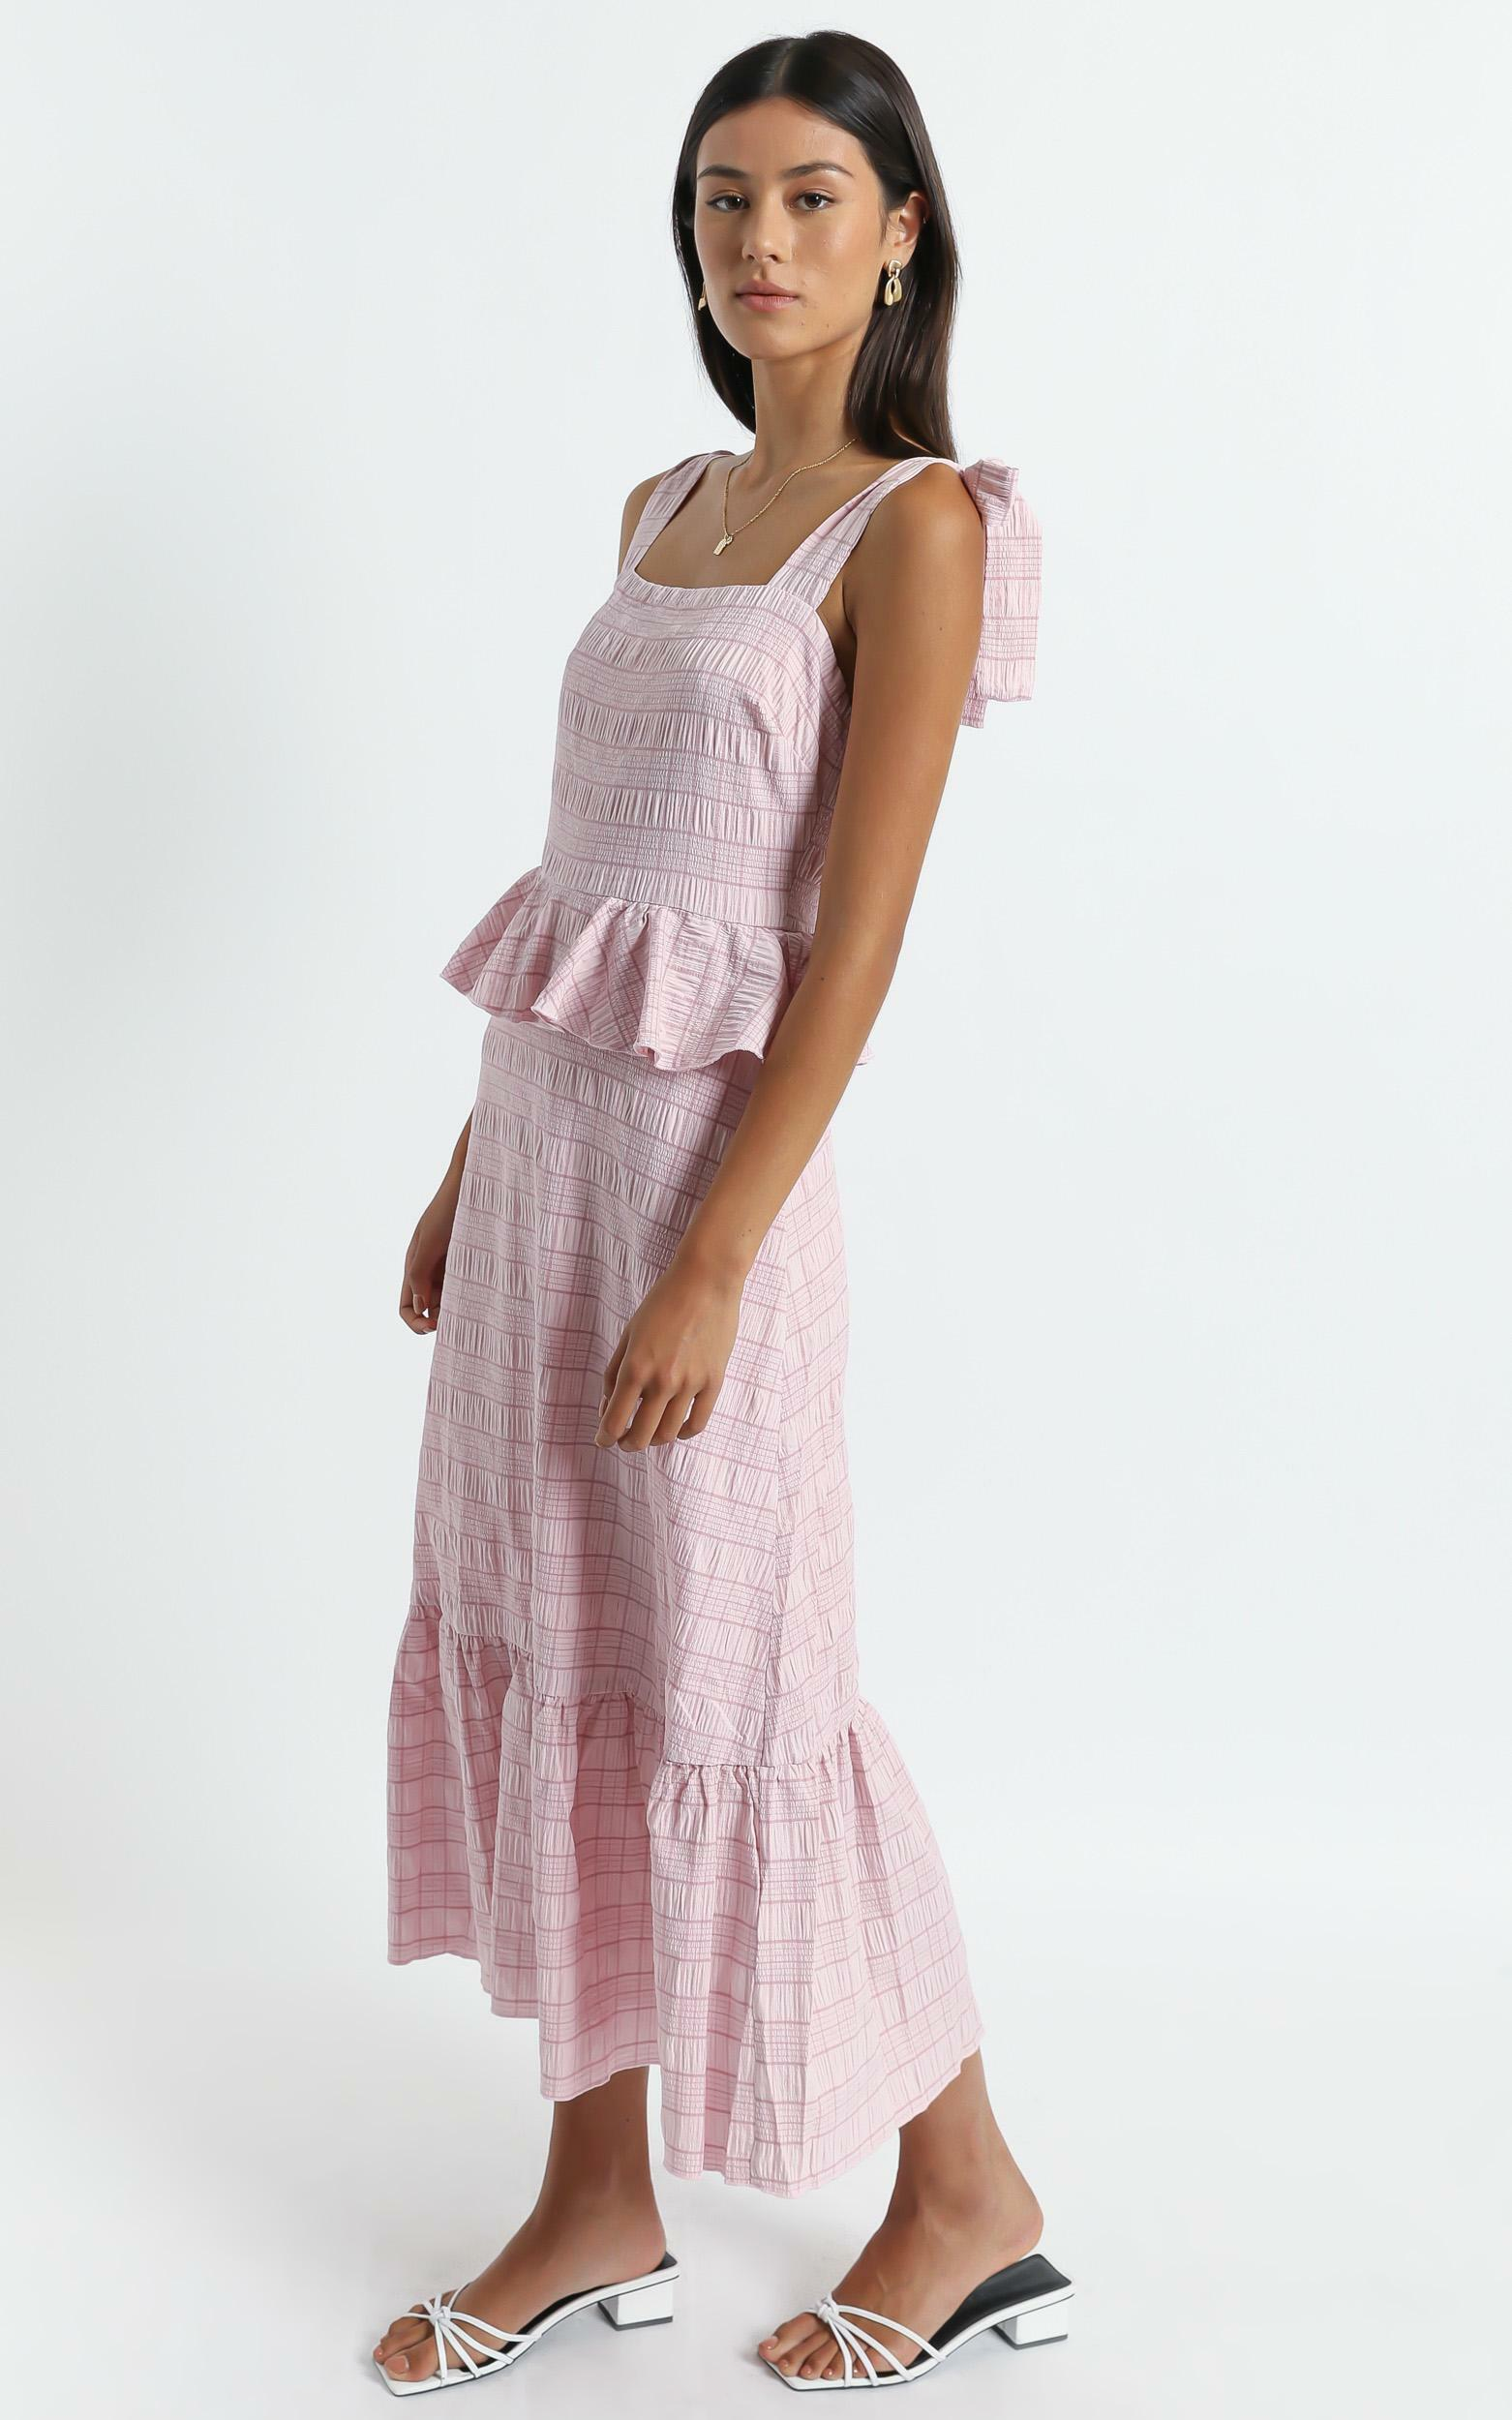 Alane Dress in Blush Check - 6 (XS), Blush, hi-res image number null